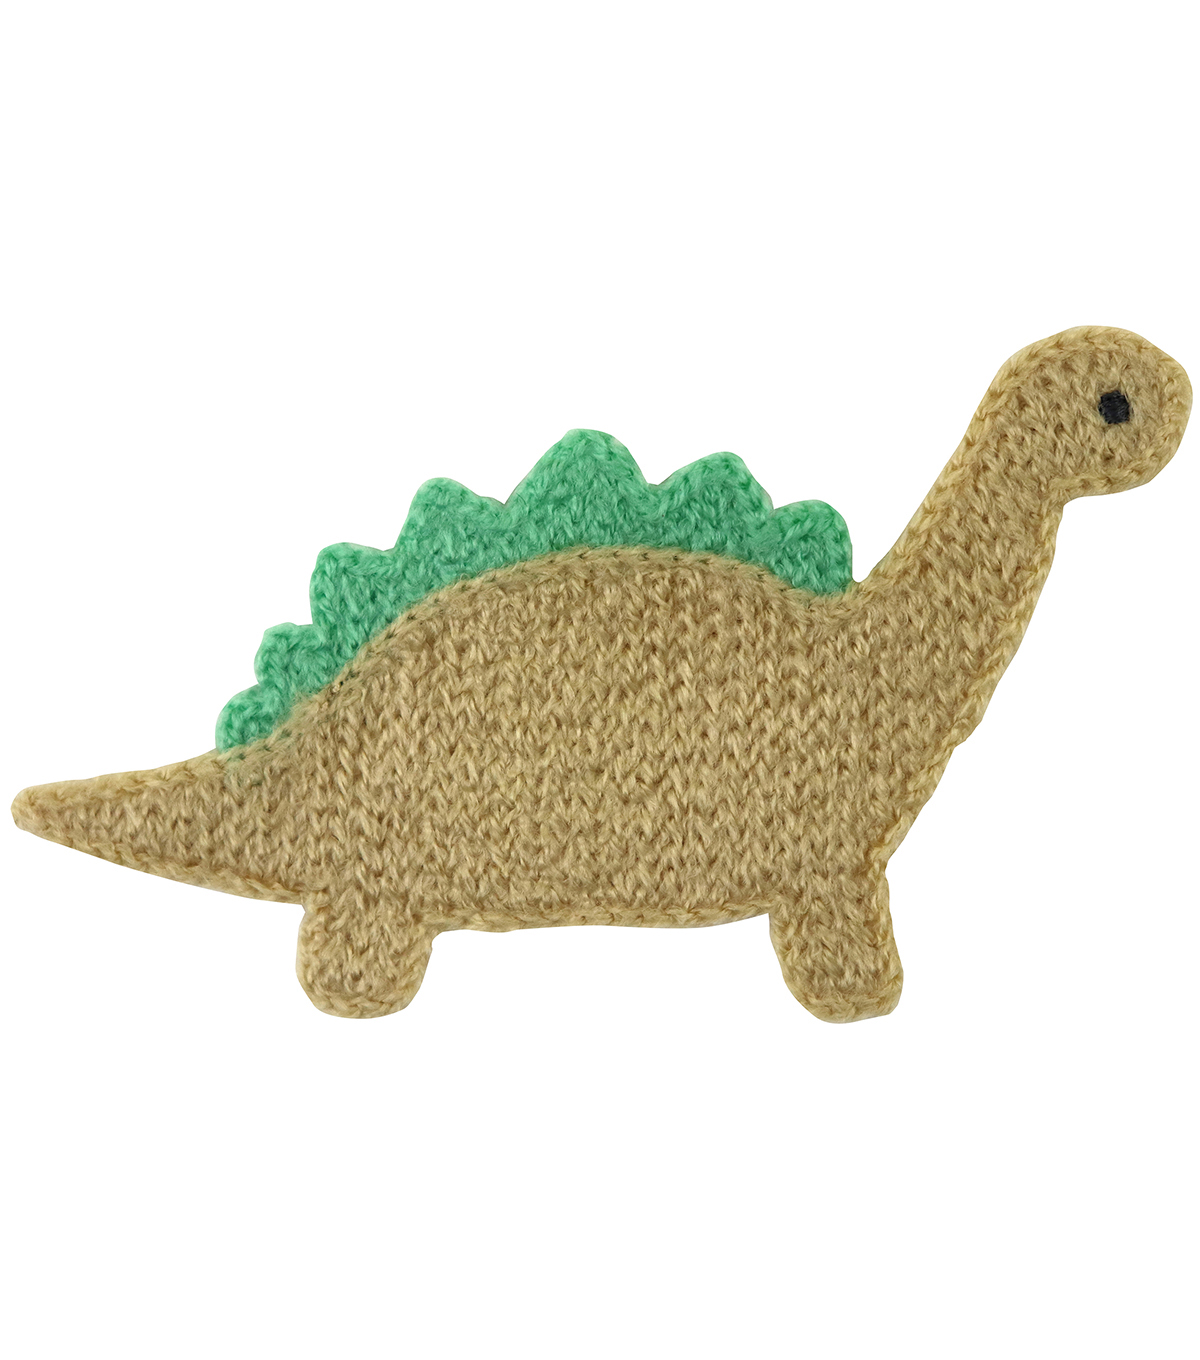 Simplicity Dinosaur Baby Sew-on Applique-Brown